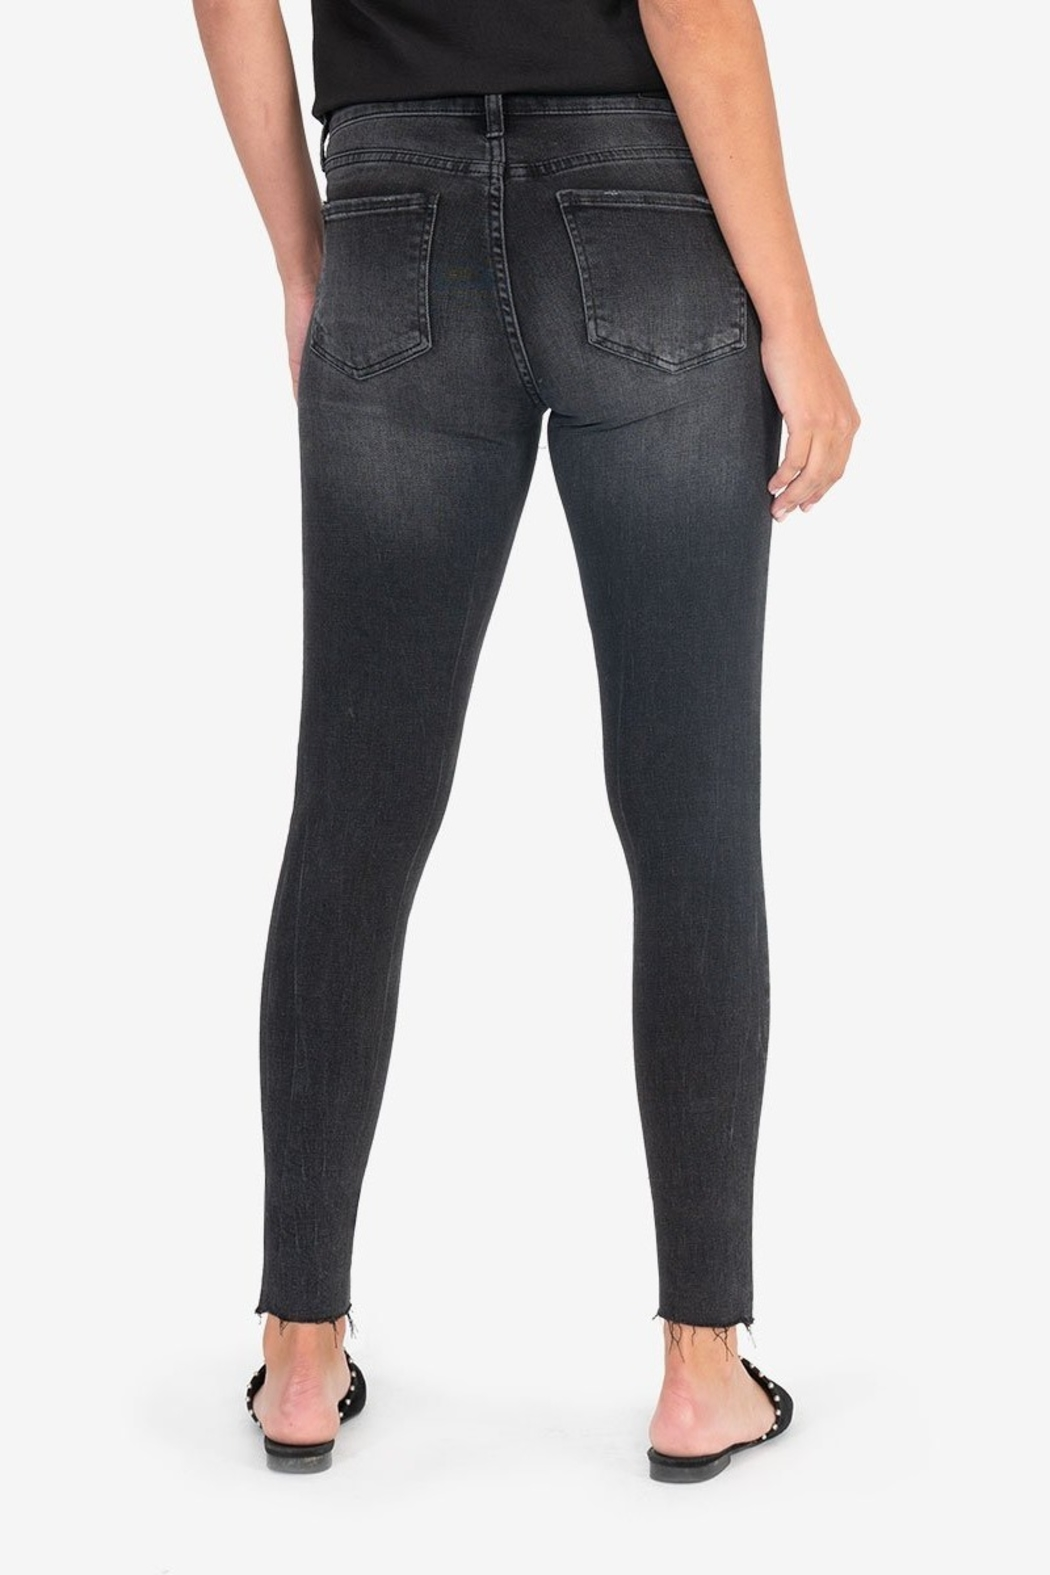 Kut from the Kloth CONNIE ANKLE RAW HEM - Side Cropped Image